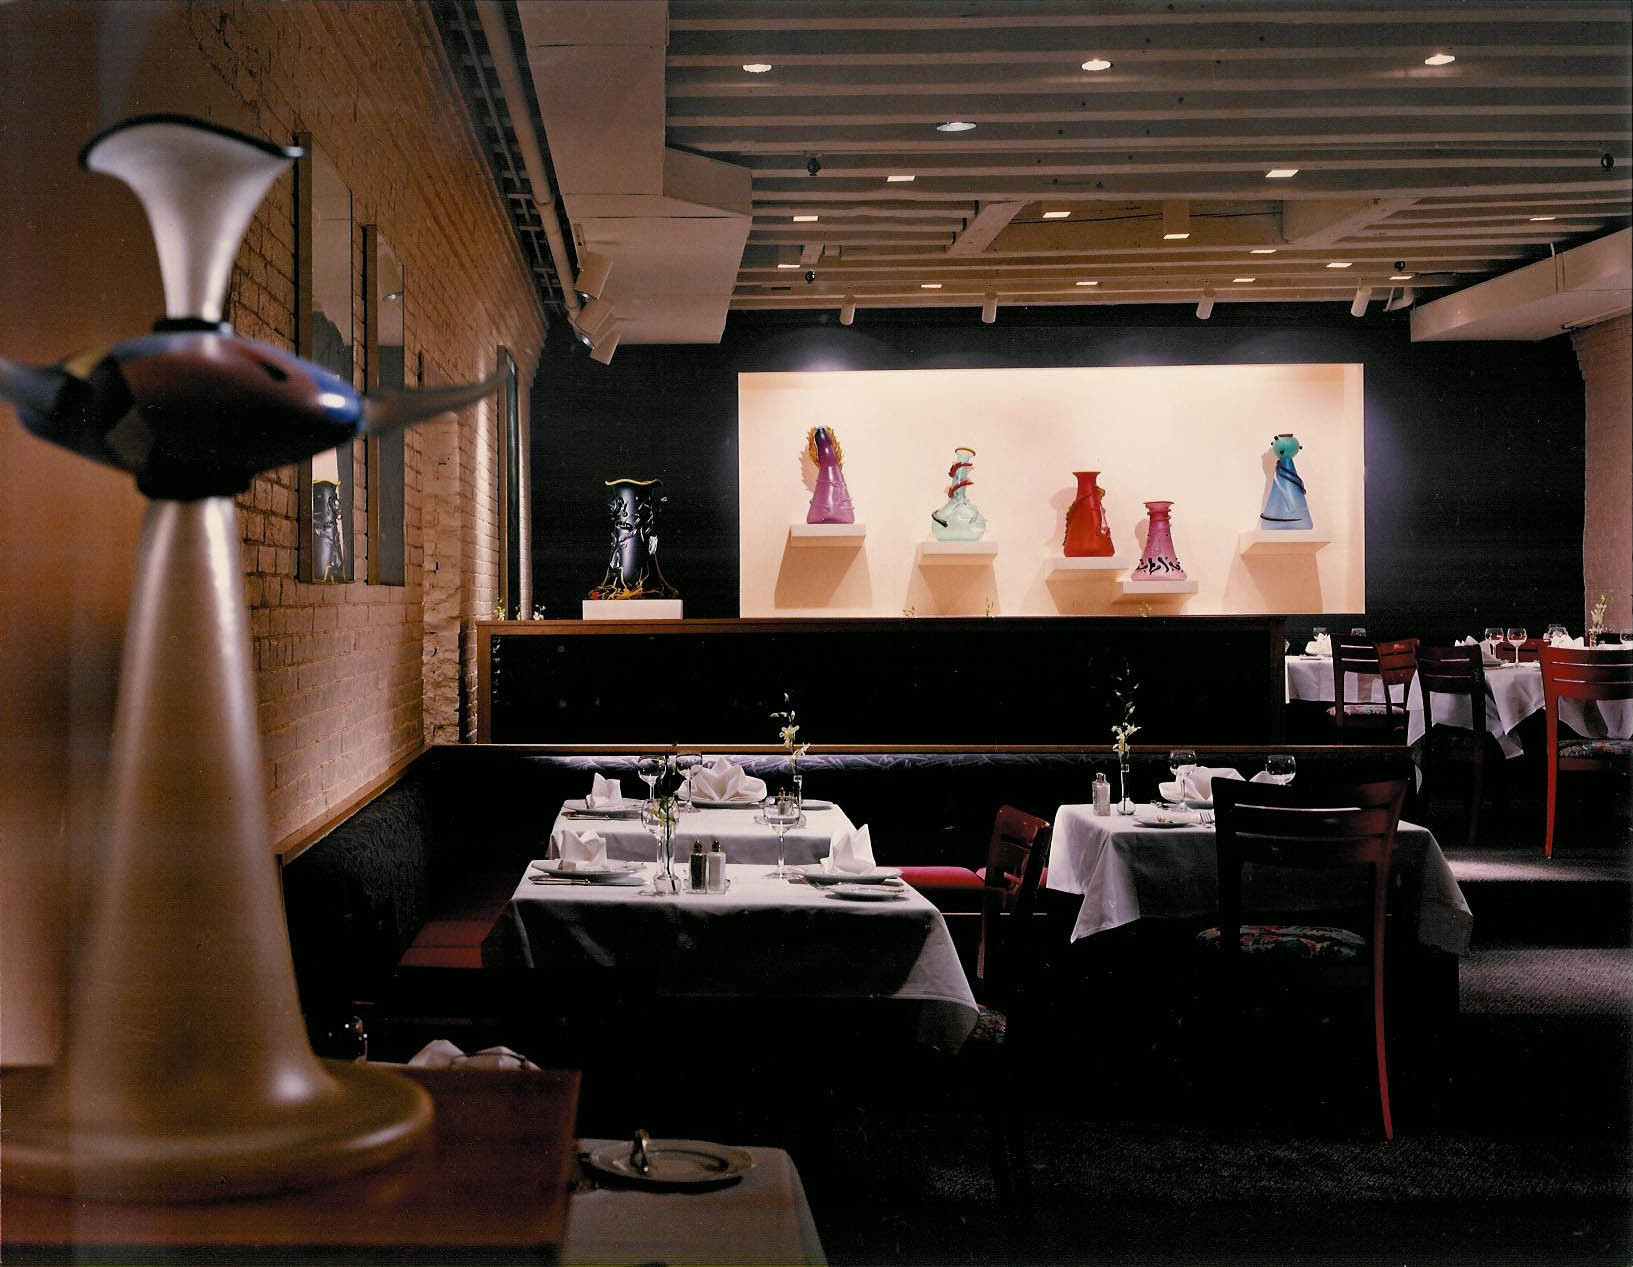 Dining Room with glass sculptures by Dan Dailey